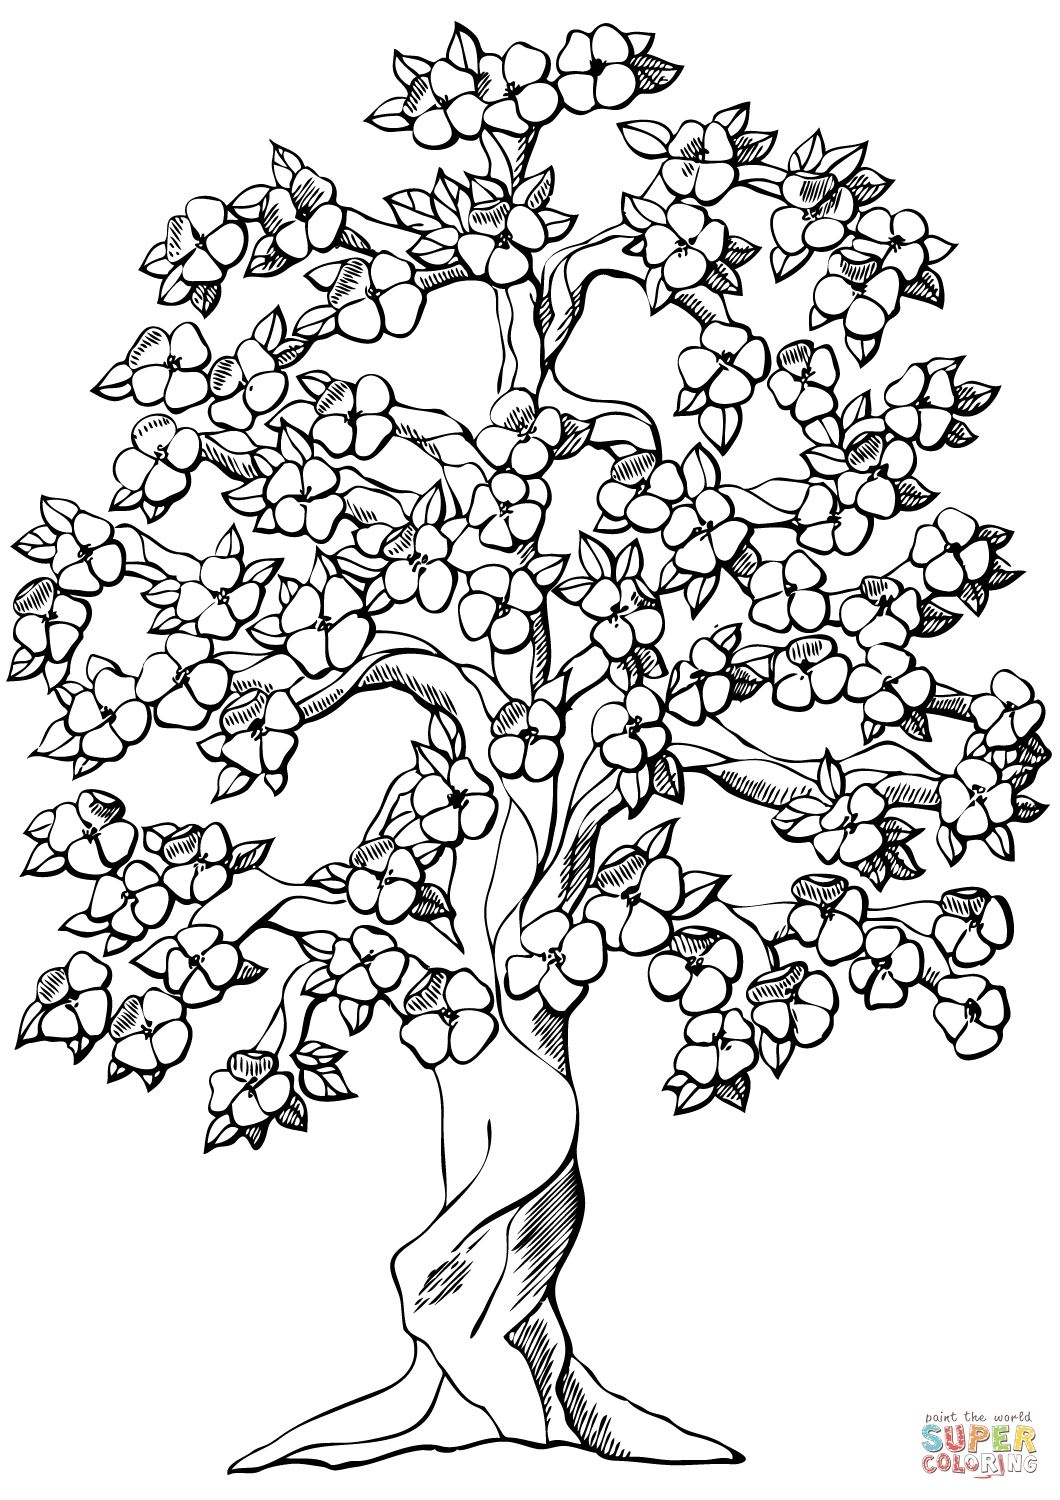 Weeping Cherry Blossom Tree Coloring Pages For Kids Collection Tree Coloring Page Flower Coloring Pages Coloring Pages